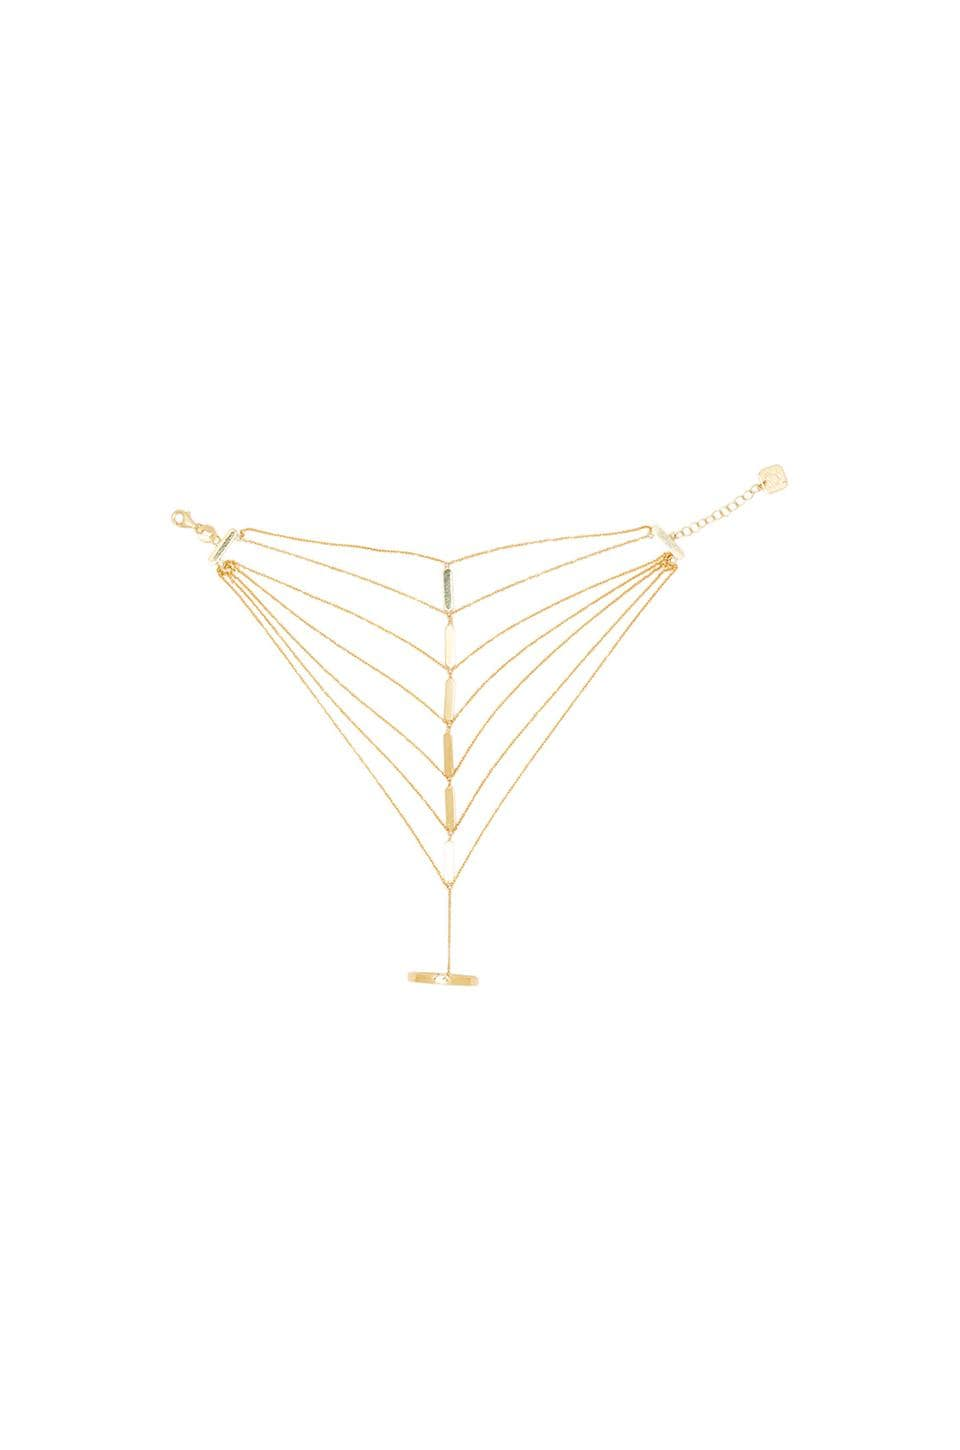 joolz by Martha Calvo Vanessa Handchain in Gold